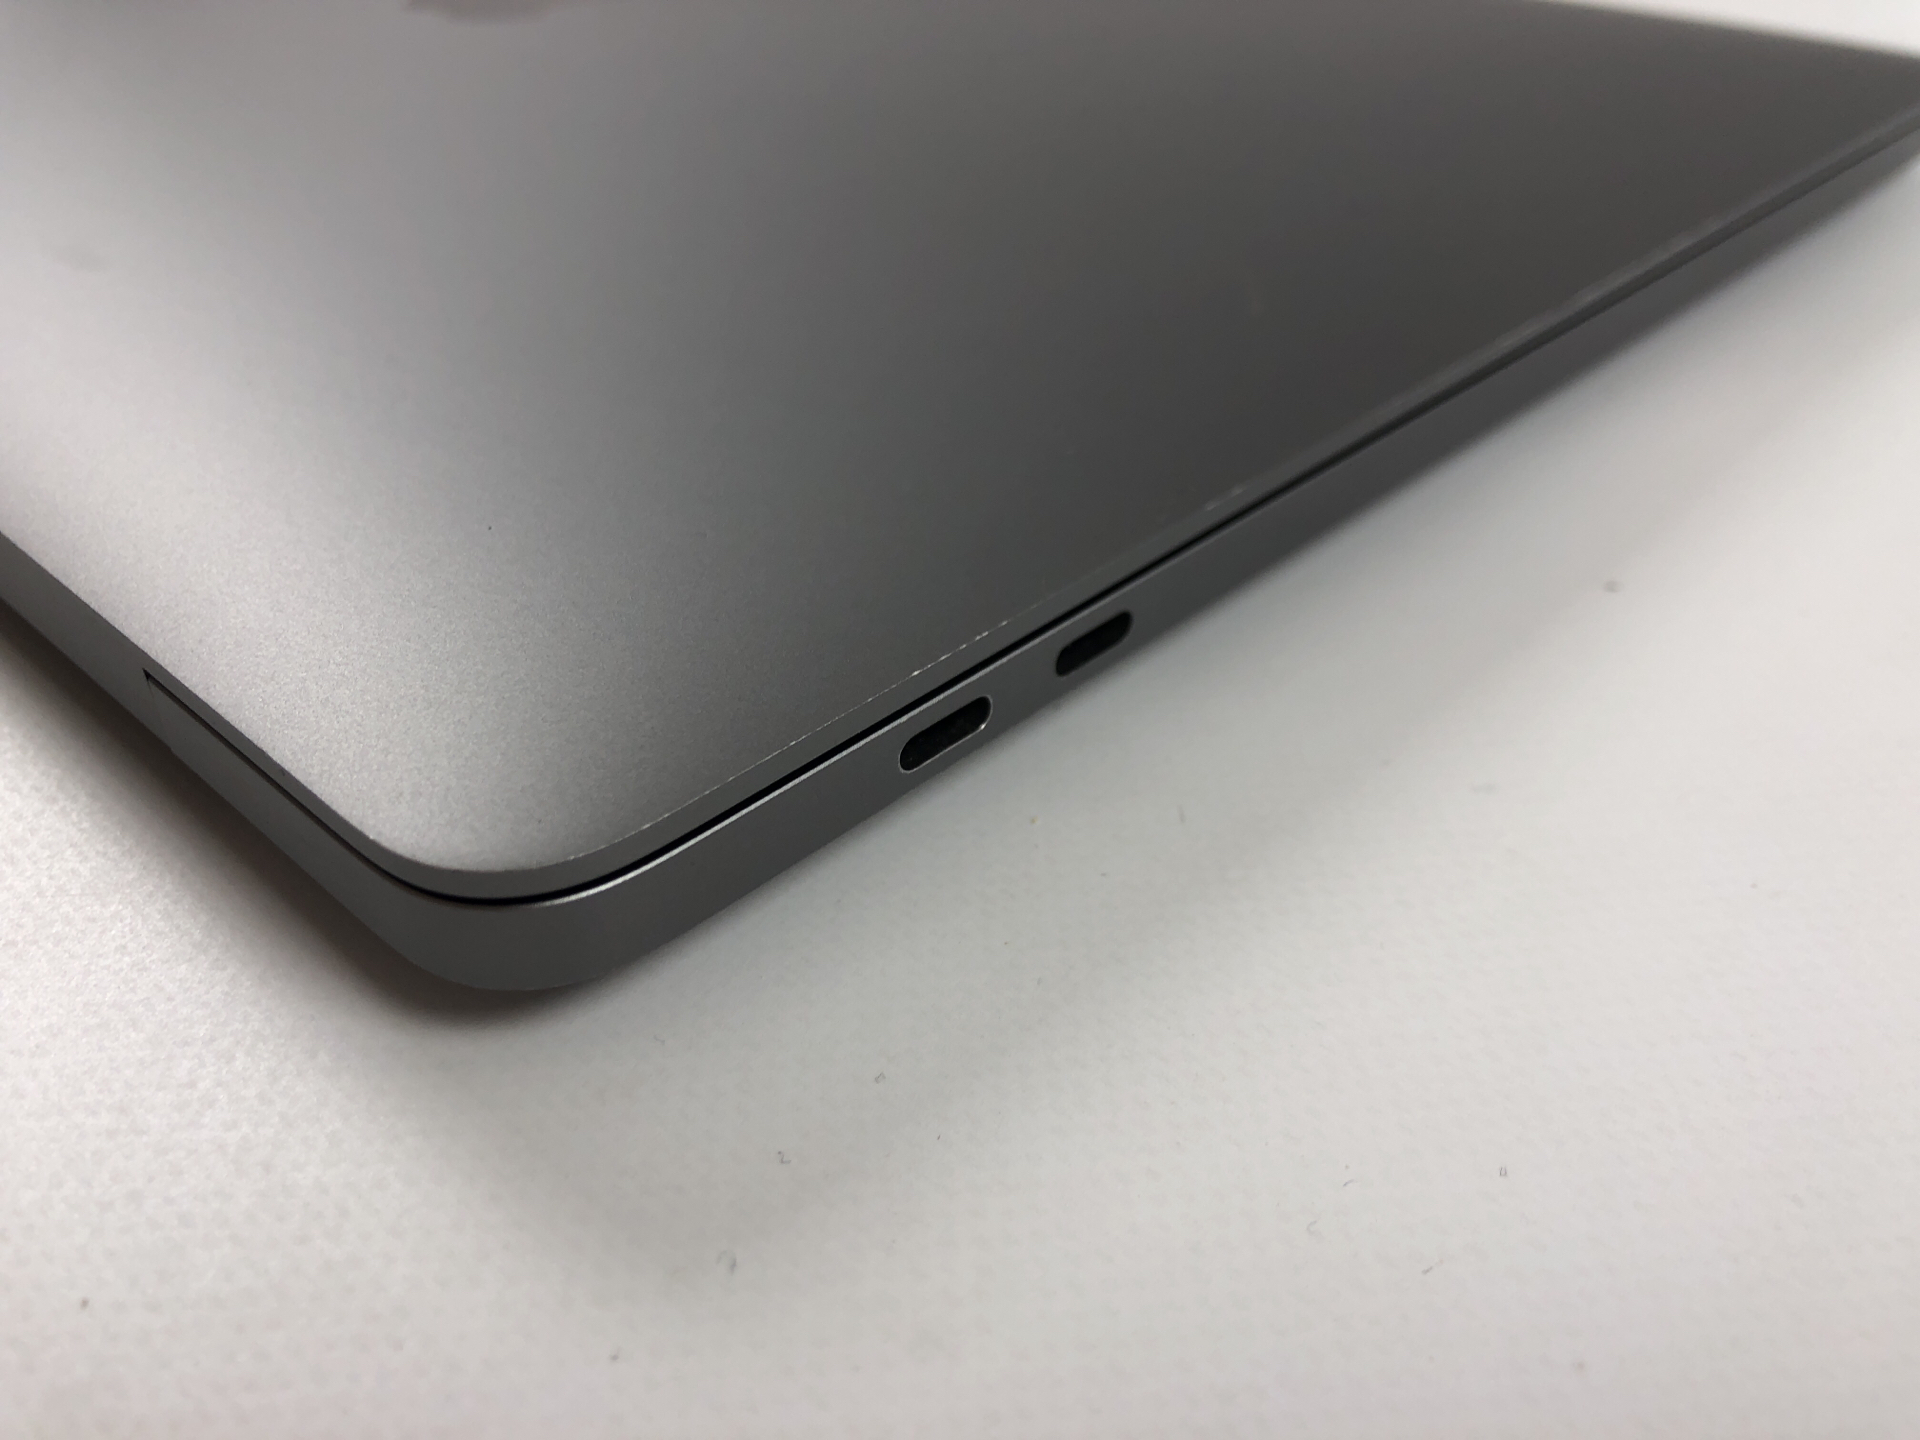 """MacBook Pro 16"""" Touch Bar Late 2019 (Intel 8-Core i9 2.3 GHz 16 GB RAM 1 TB SSD), Space Gray, Intel 8-Core i9 2.3 GHz, 16 GB RAM, 1 TB SSD, Afbeelding 3"""